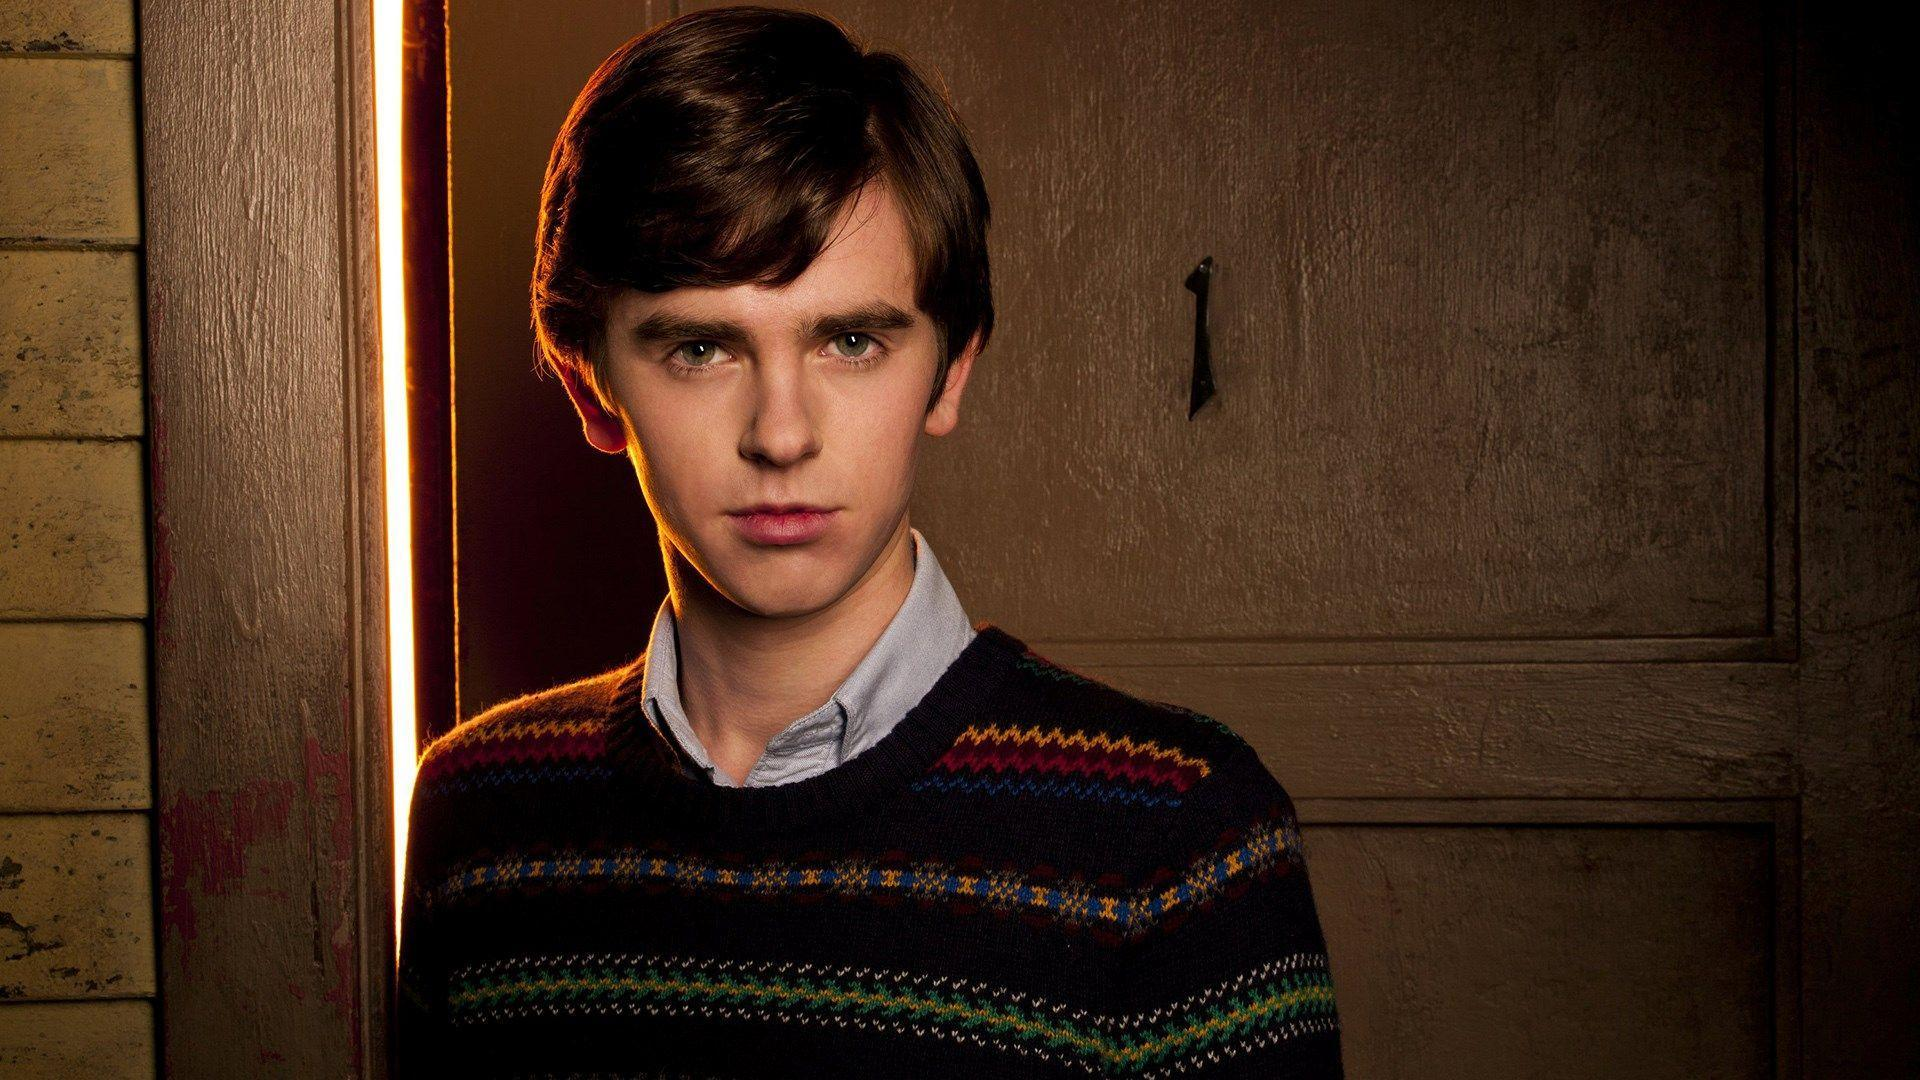 1920x1080 windows wallpapers bates motel